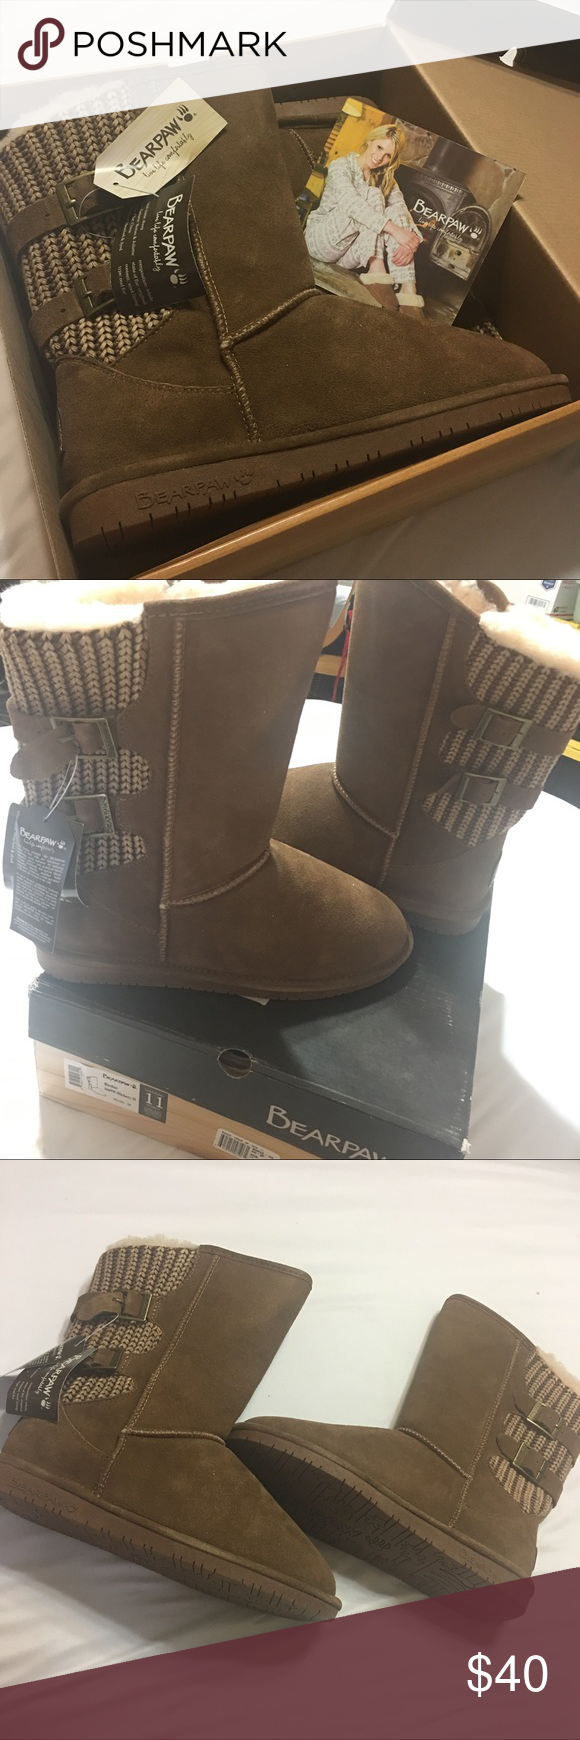 d14727b27208 Bearpaw Women s Boshie boots BEARPAW® Boshie boot features a suede front  and knitted back for